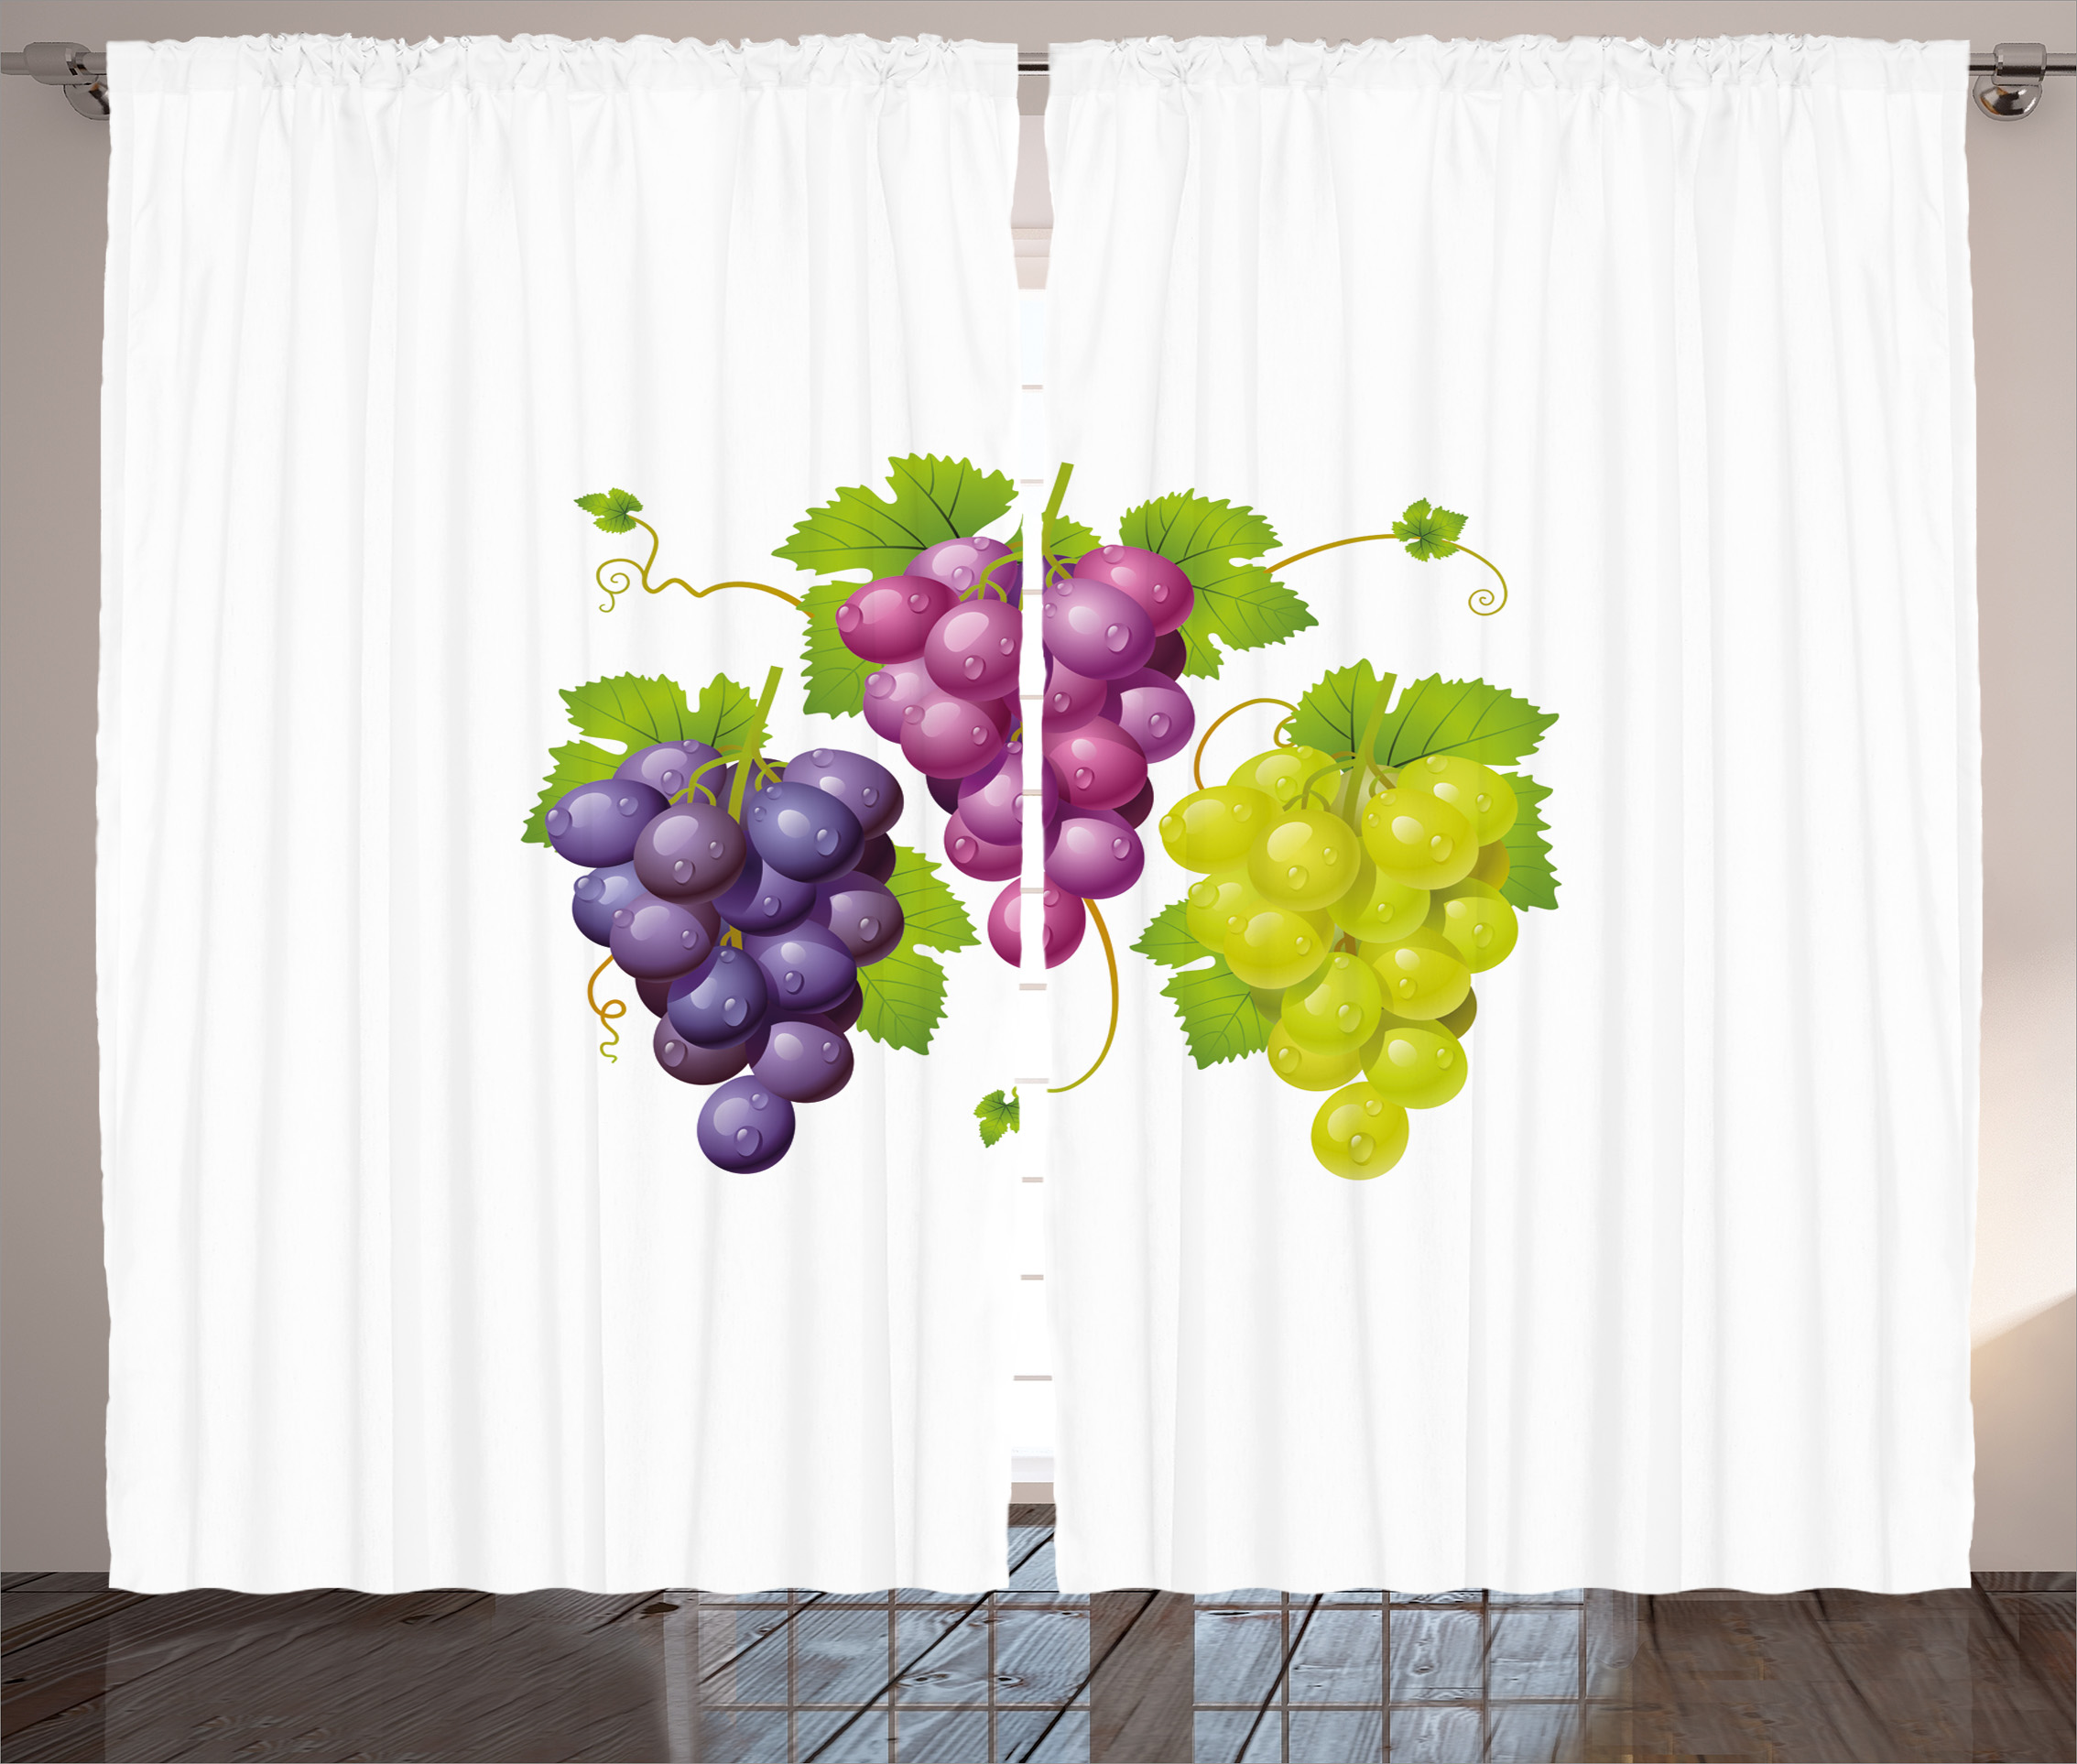 Grapes Home Decor Curtains 2 Panels Set Three Cluster Of Ivy Burgundy Region Blending Fresh Picture Artwork Window Drapes For Living Room Bedroom 108w X 84l Inches Purple Green By Ambesonne